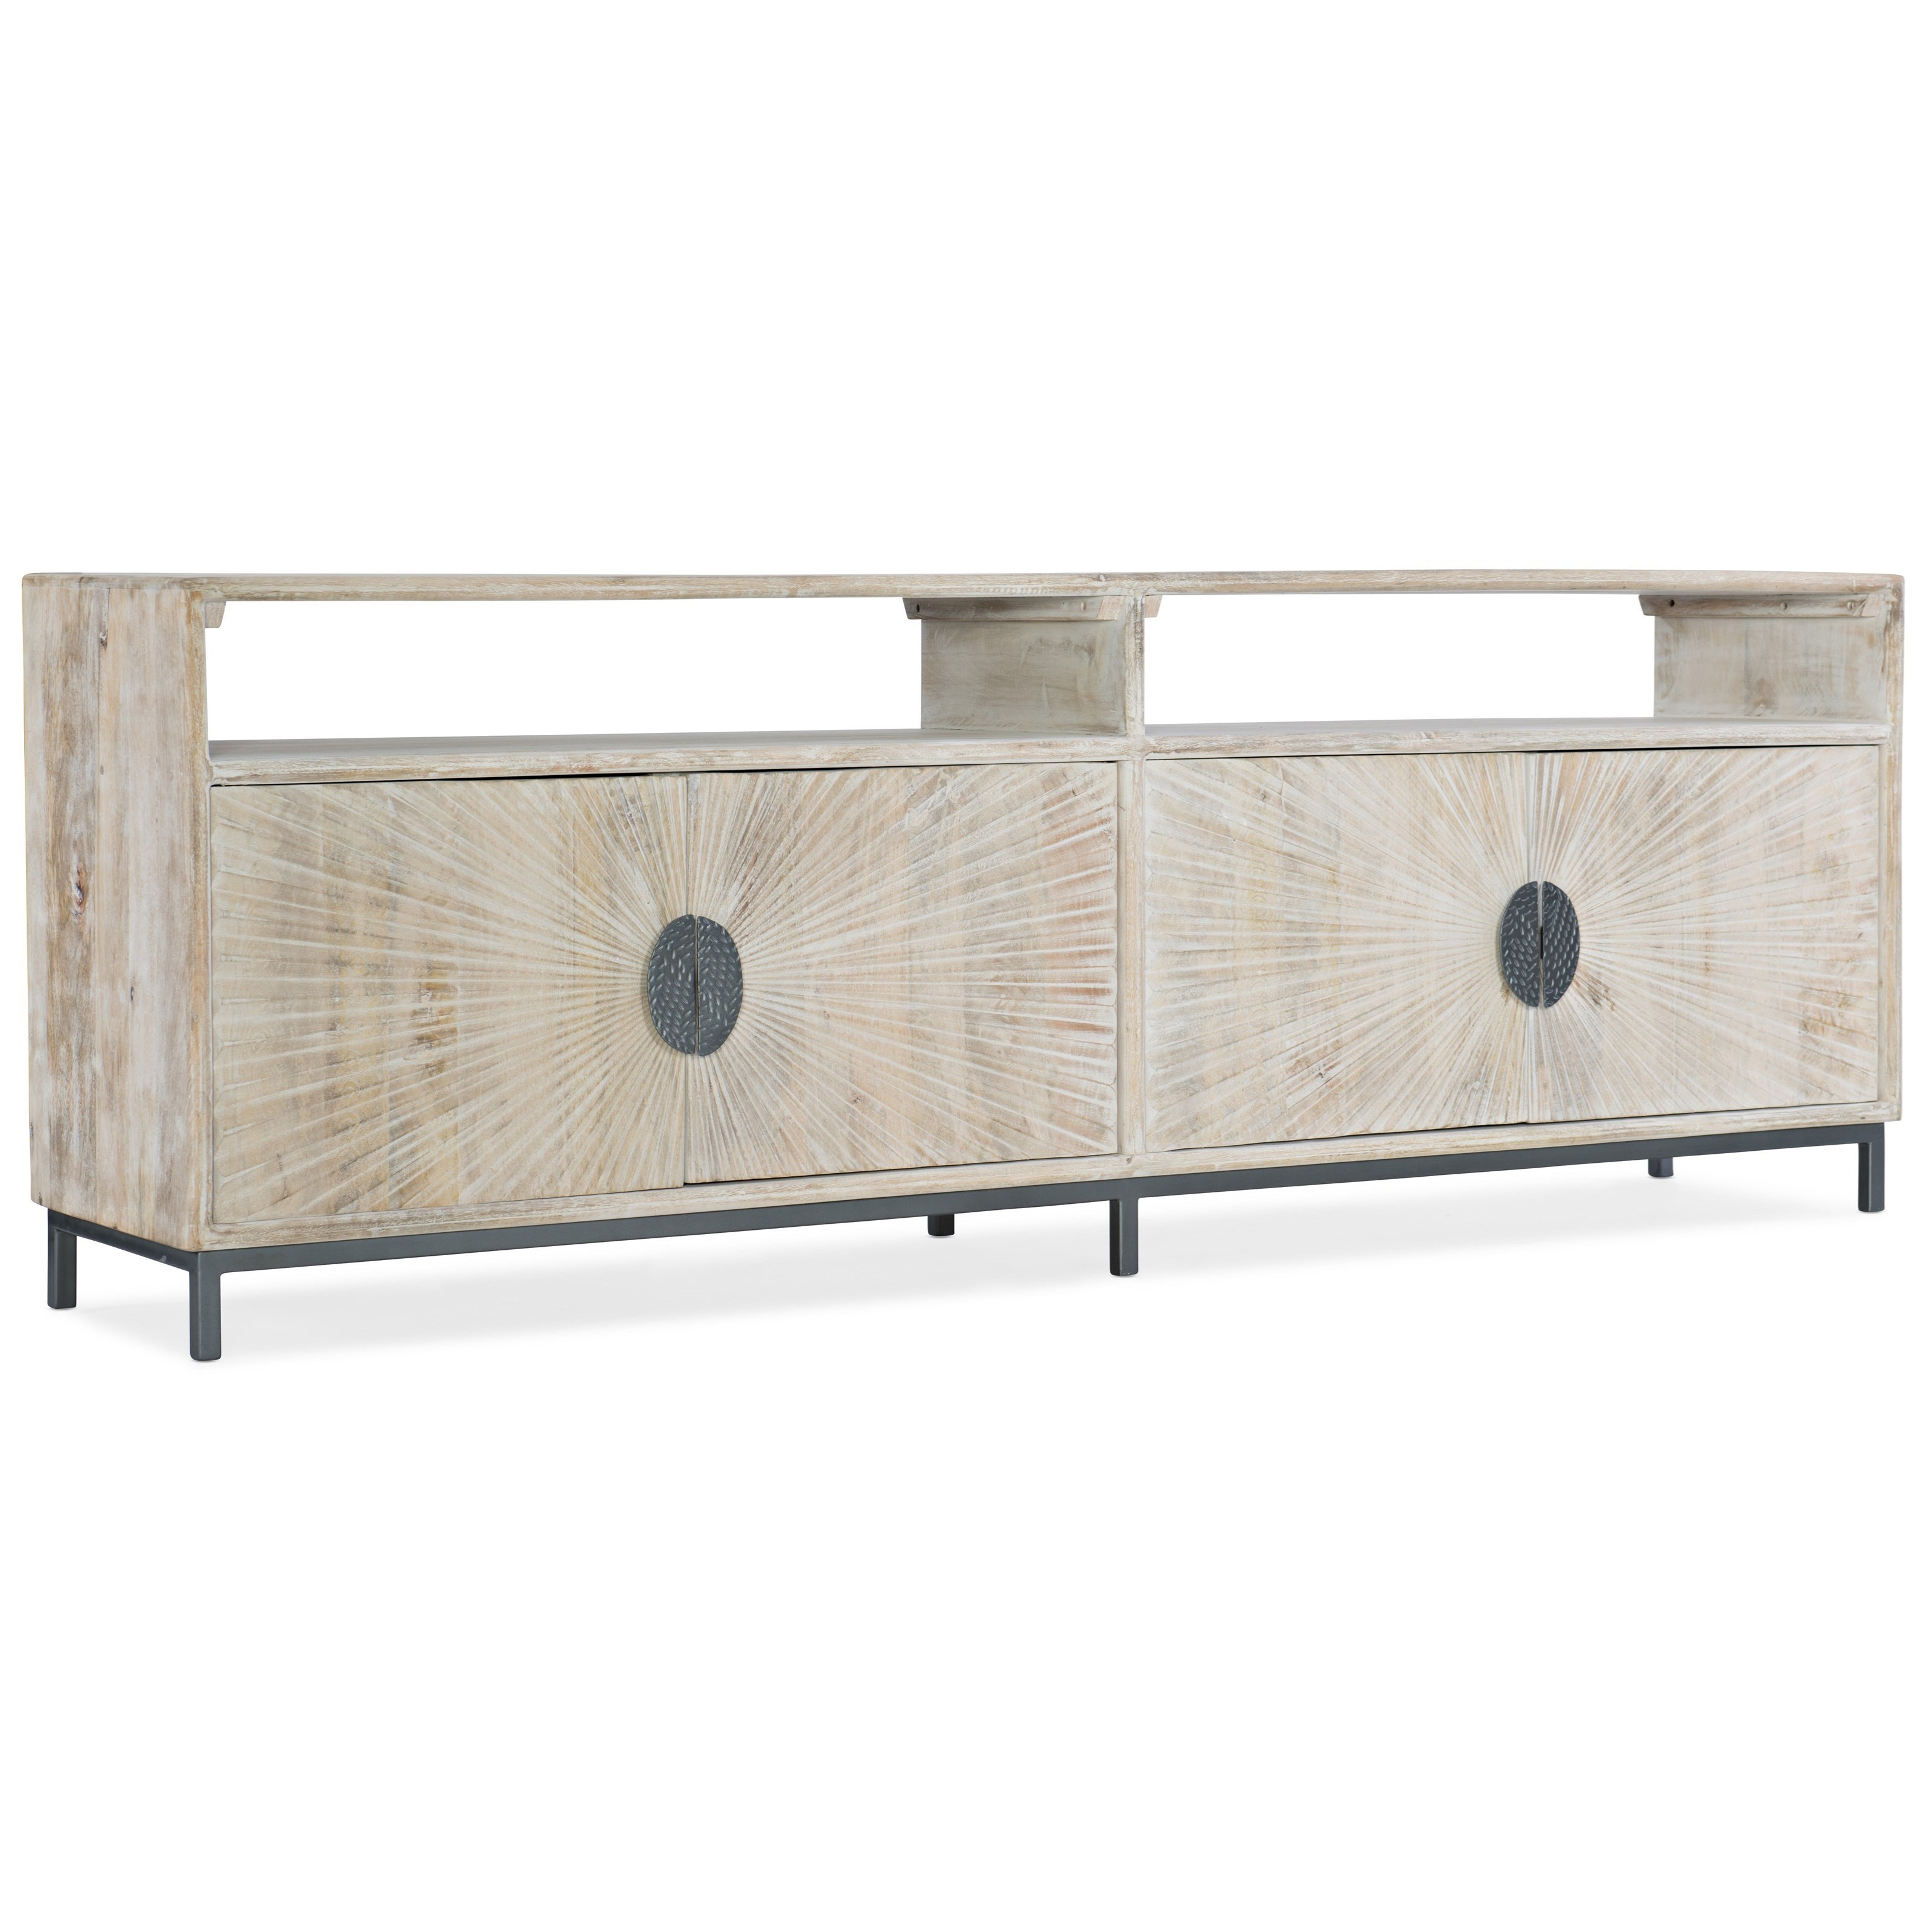 5560-55 Entertainment Console by Hooker Furniture at Michael Alan Furniture & Design